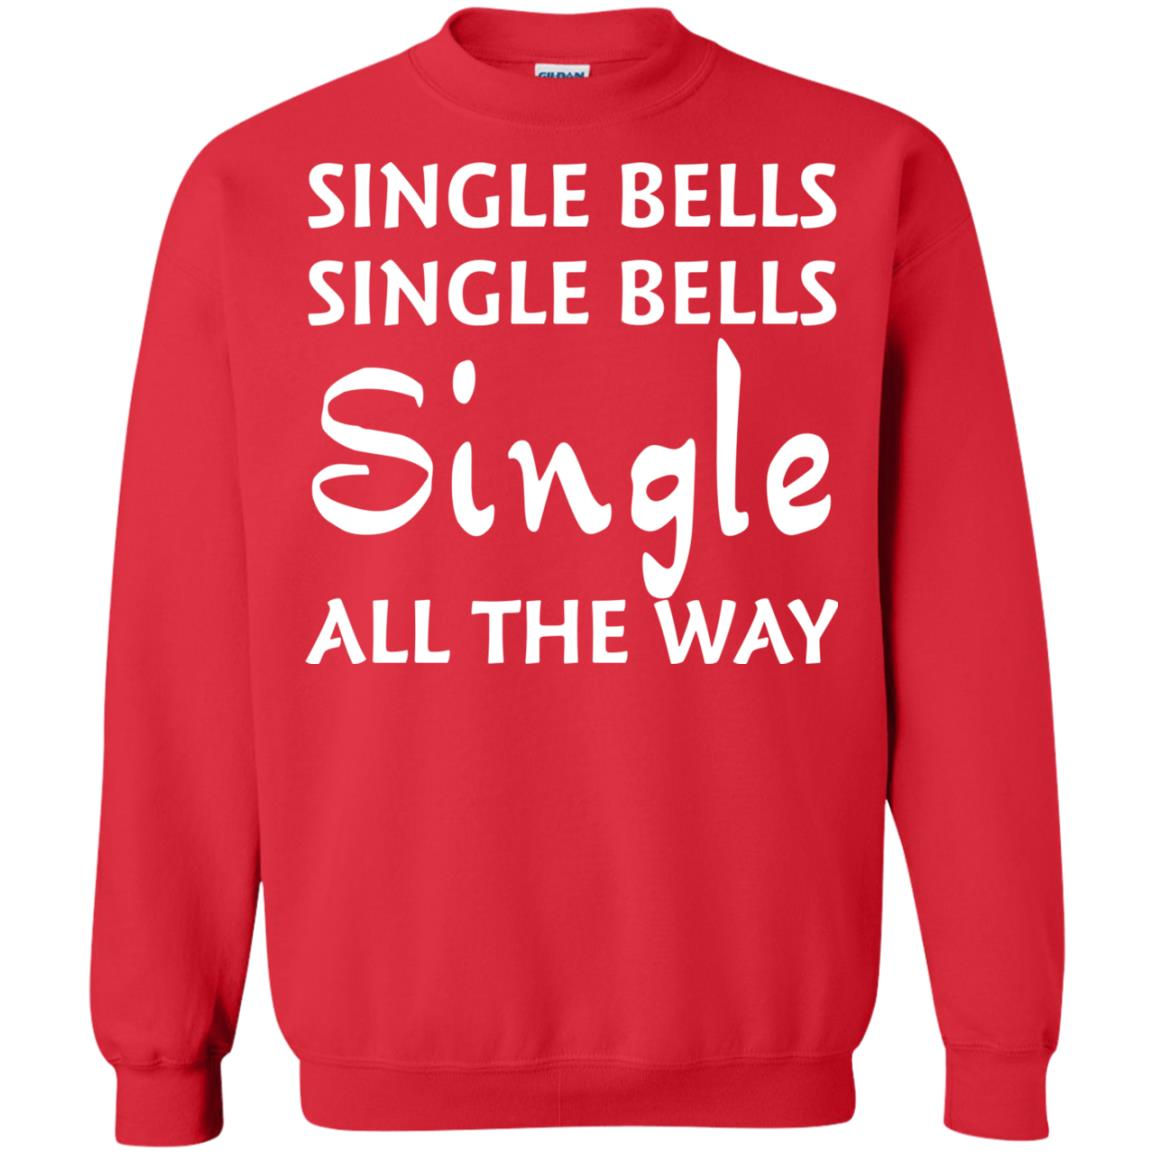 image 5126 - Single bells single bells single all the way Christmas Sweater, Shirt